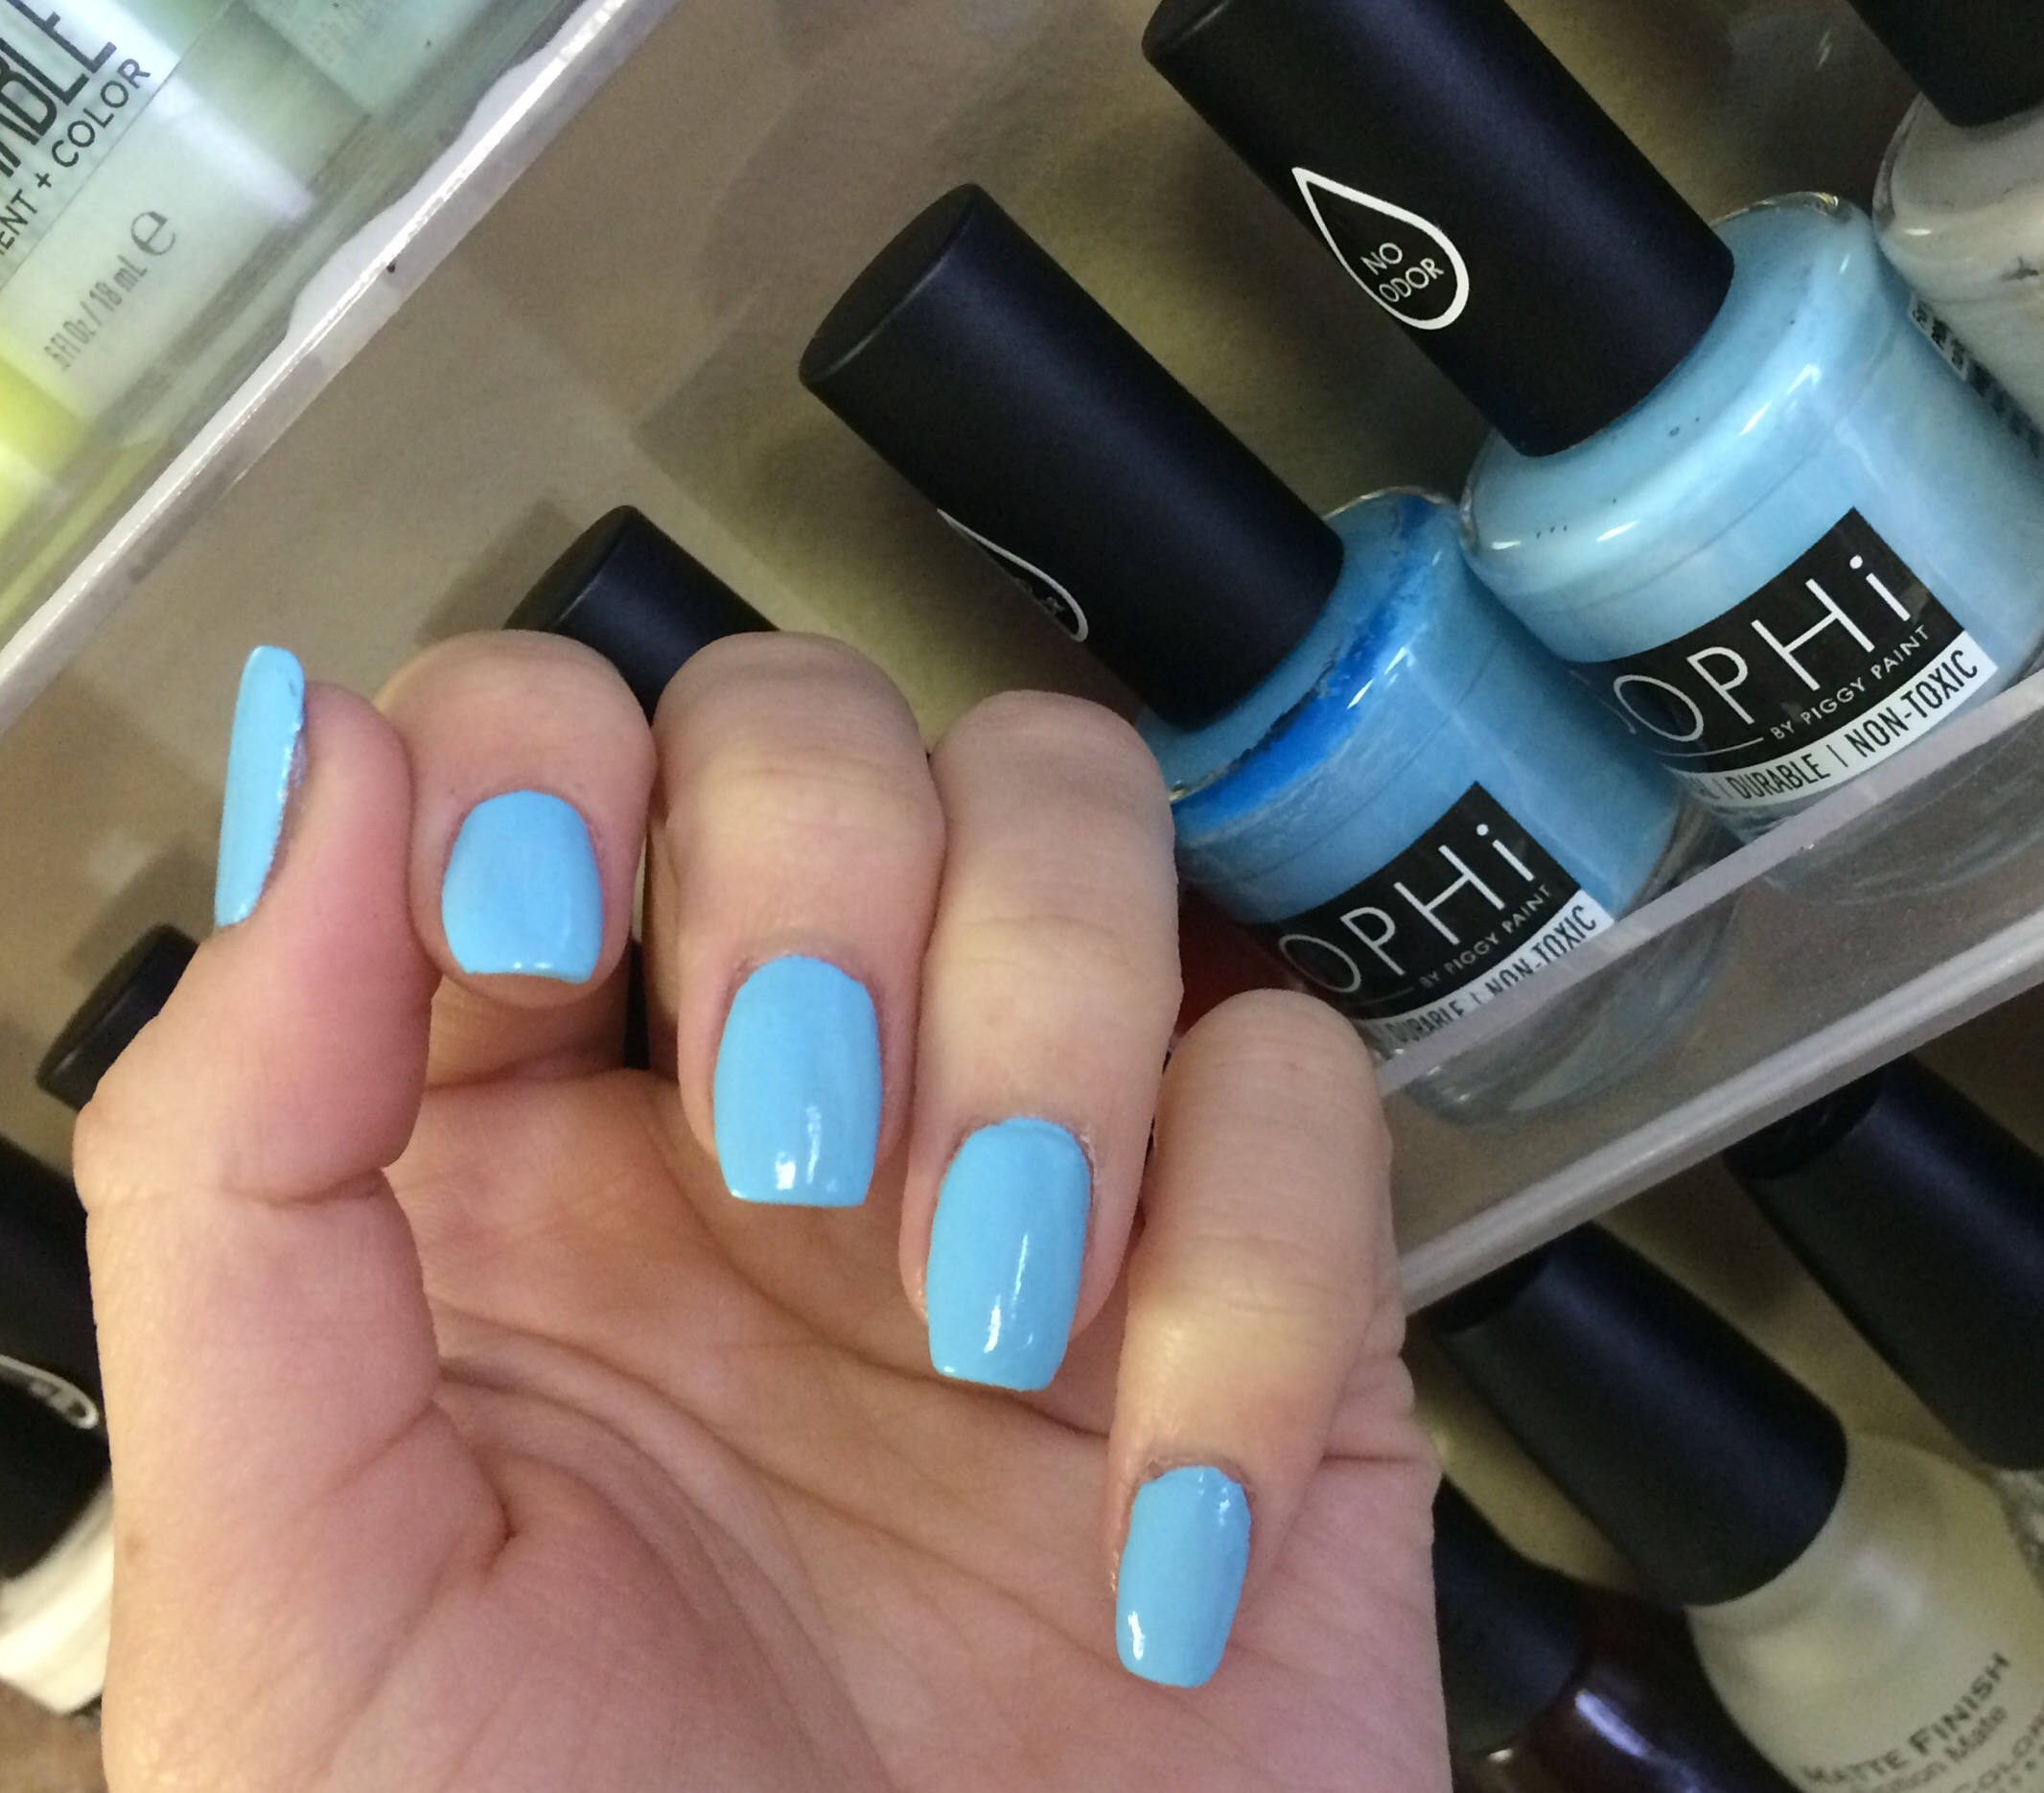 Nails of the Day! – Polished by Amy